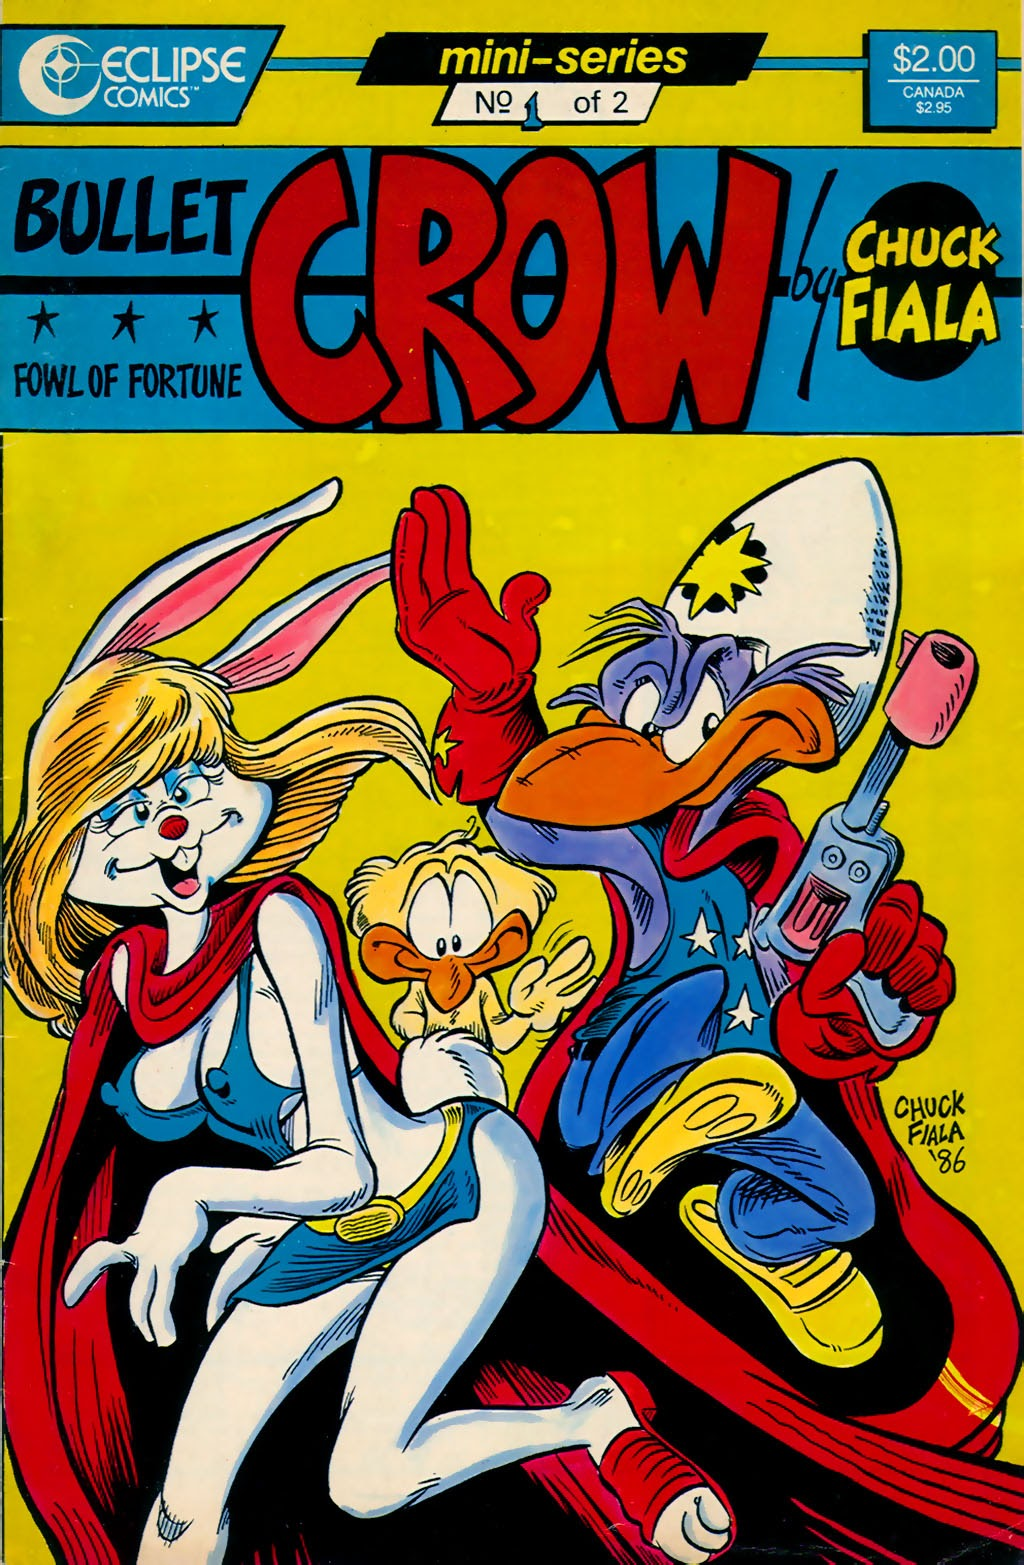 Read online Bullet Crow, Fowl of Fortune comic -  Issue #1 - 1